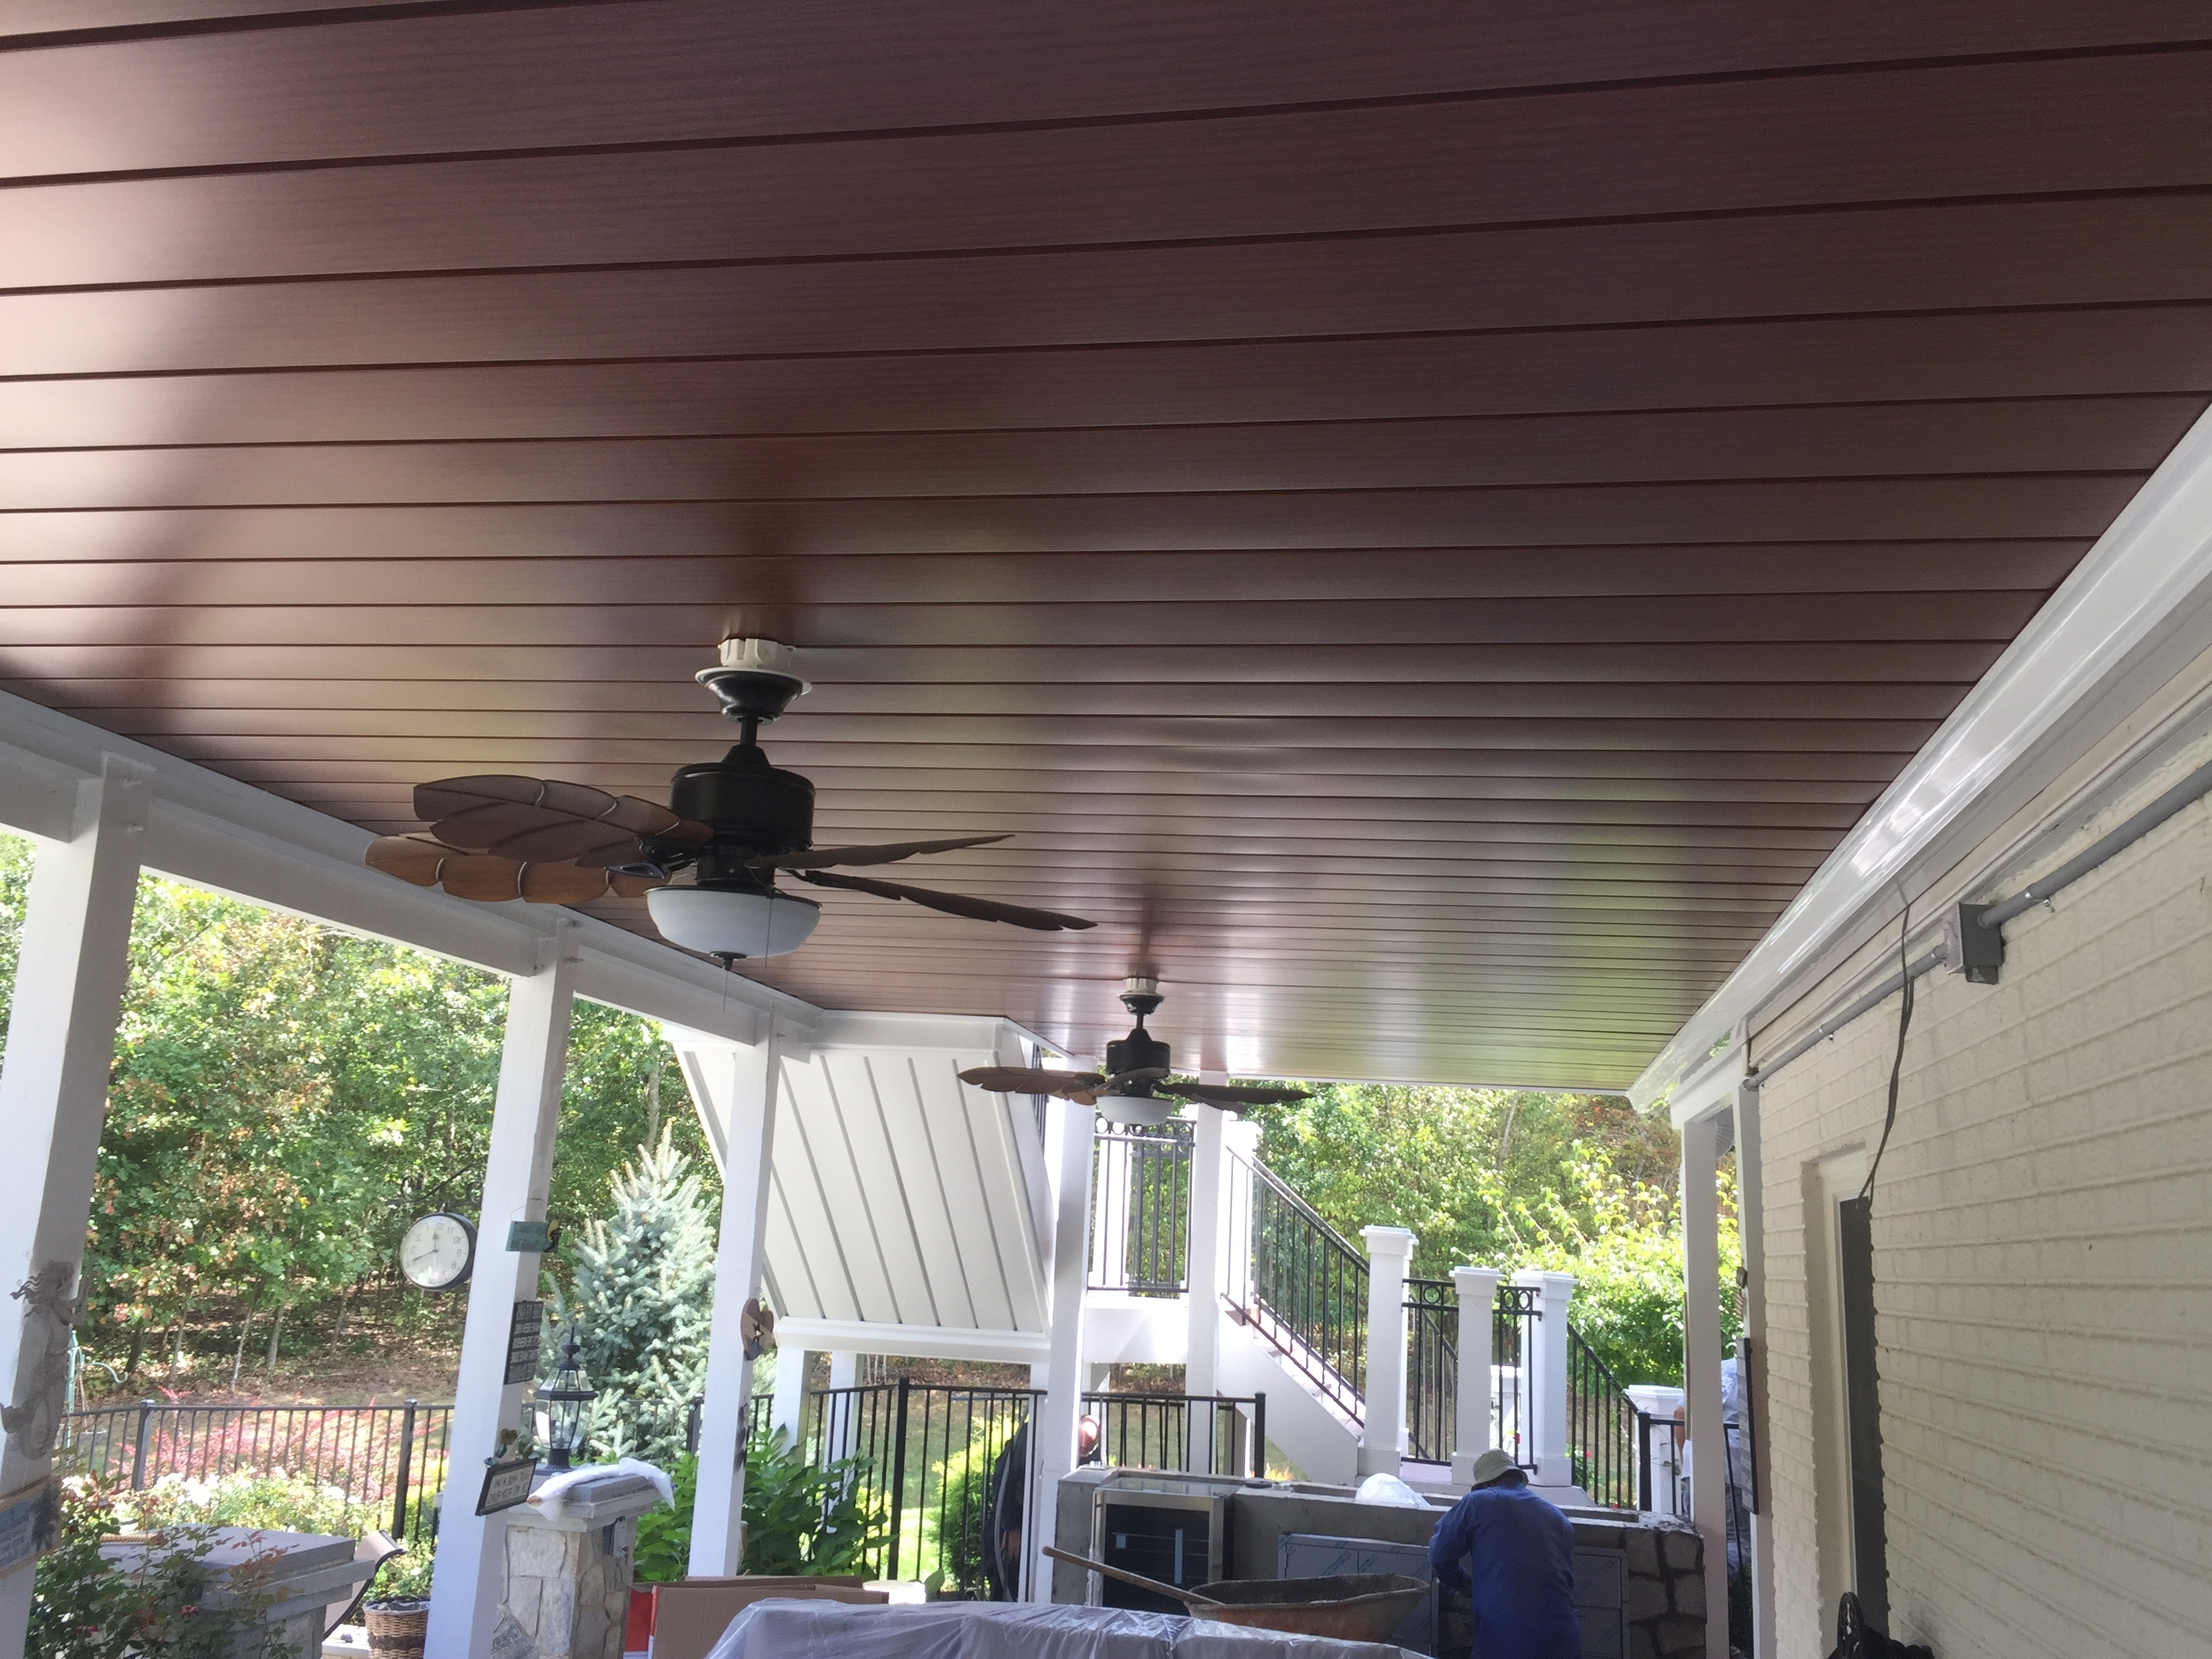 Install Outdoor Ceiling Fan Under Deck Www, Install Ceiling Fan Regarding Preferred Outdoor Ceiling Fans For Decks (Gallery 2 of 20)